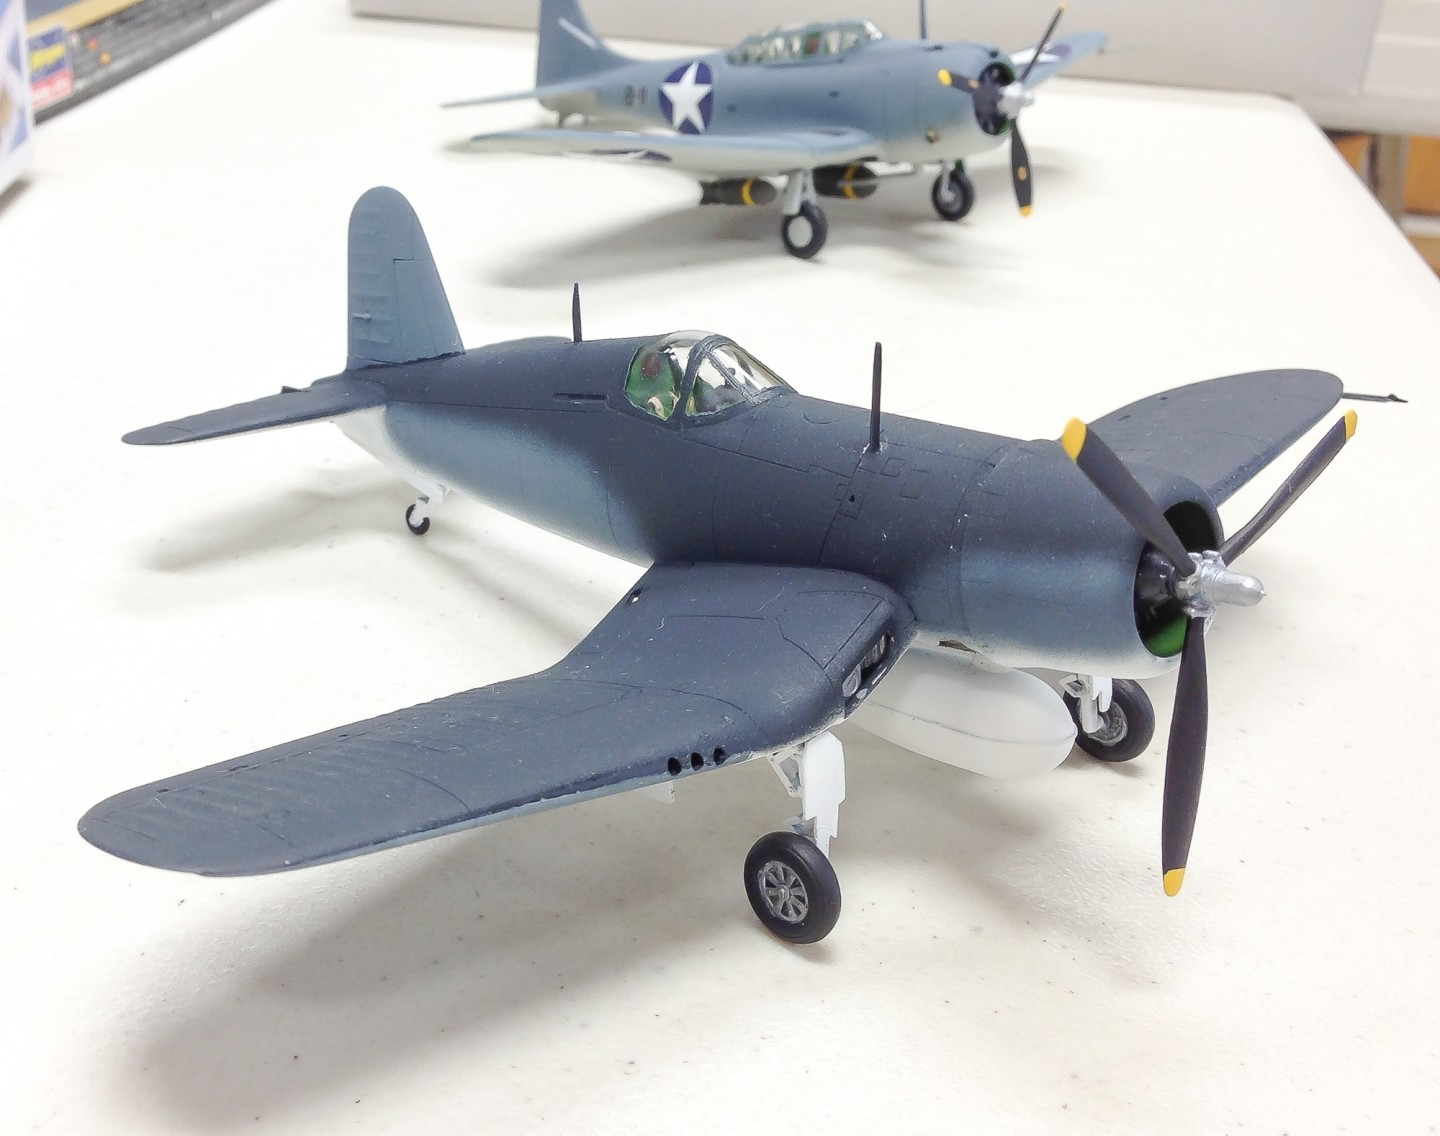 Mike Nerino's Corsair